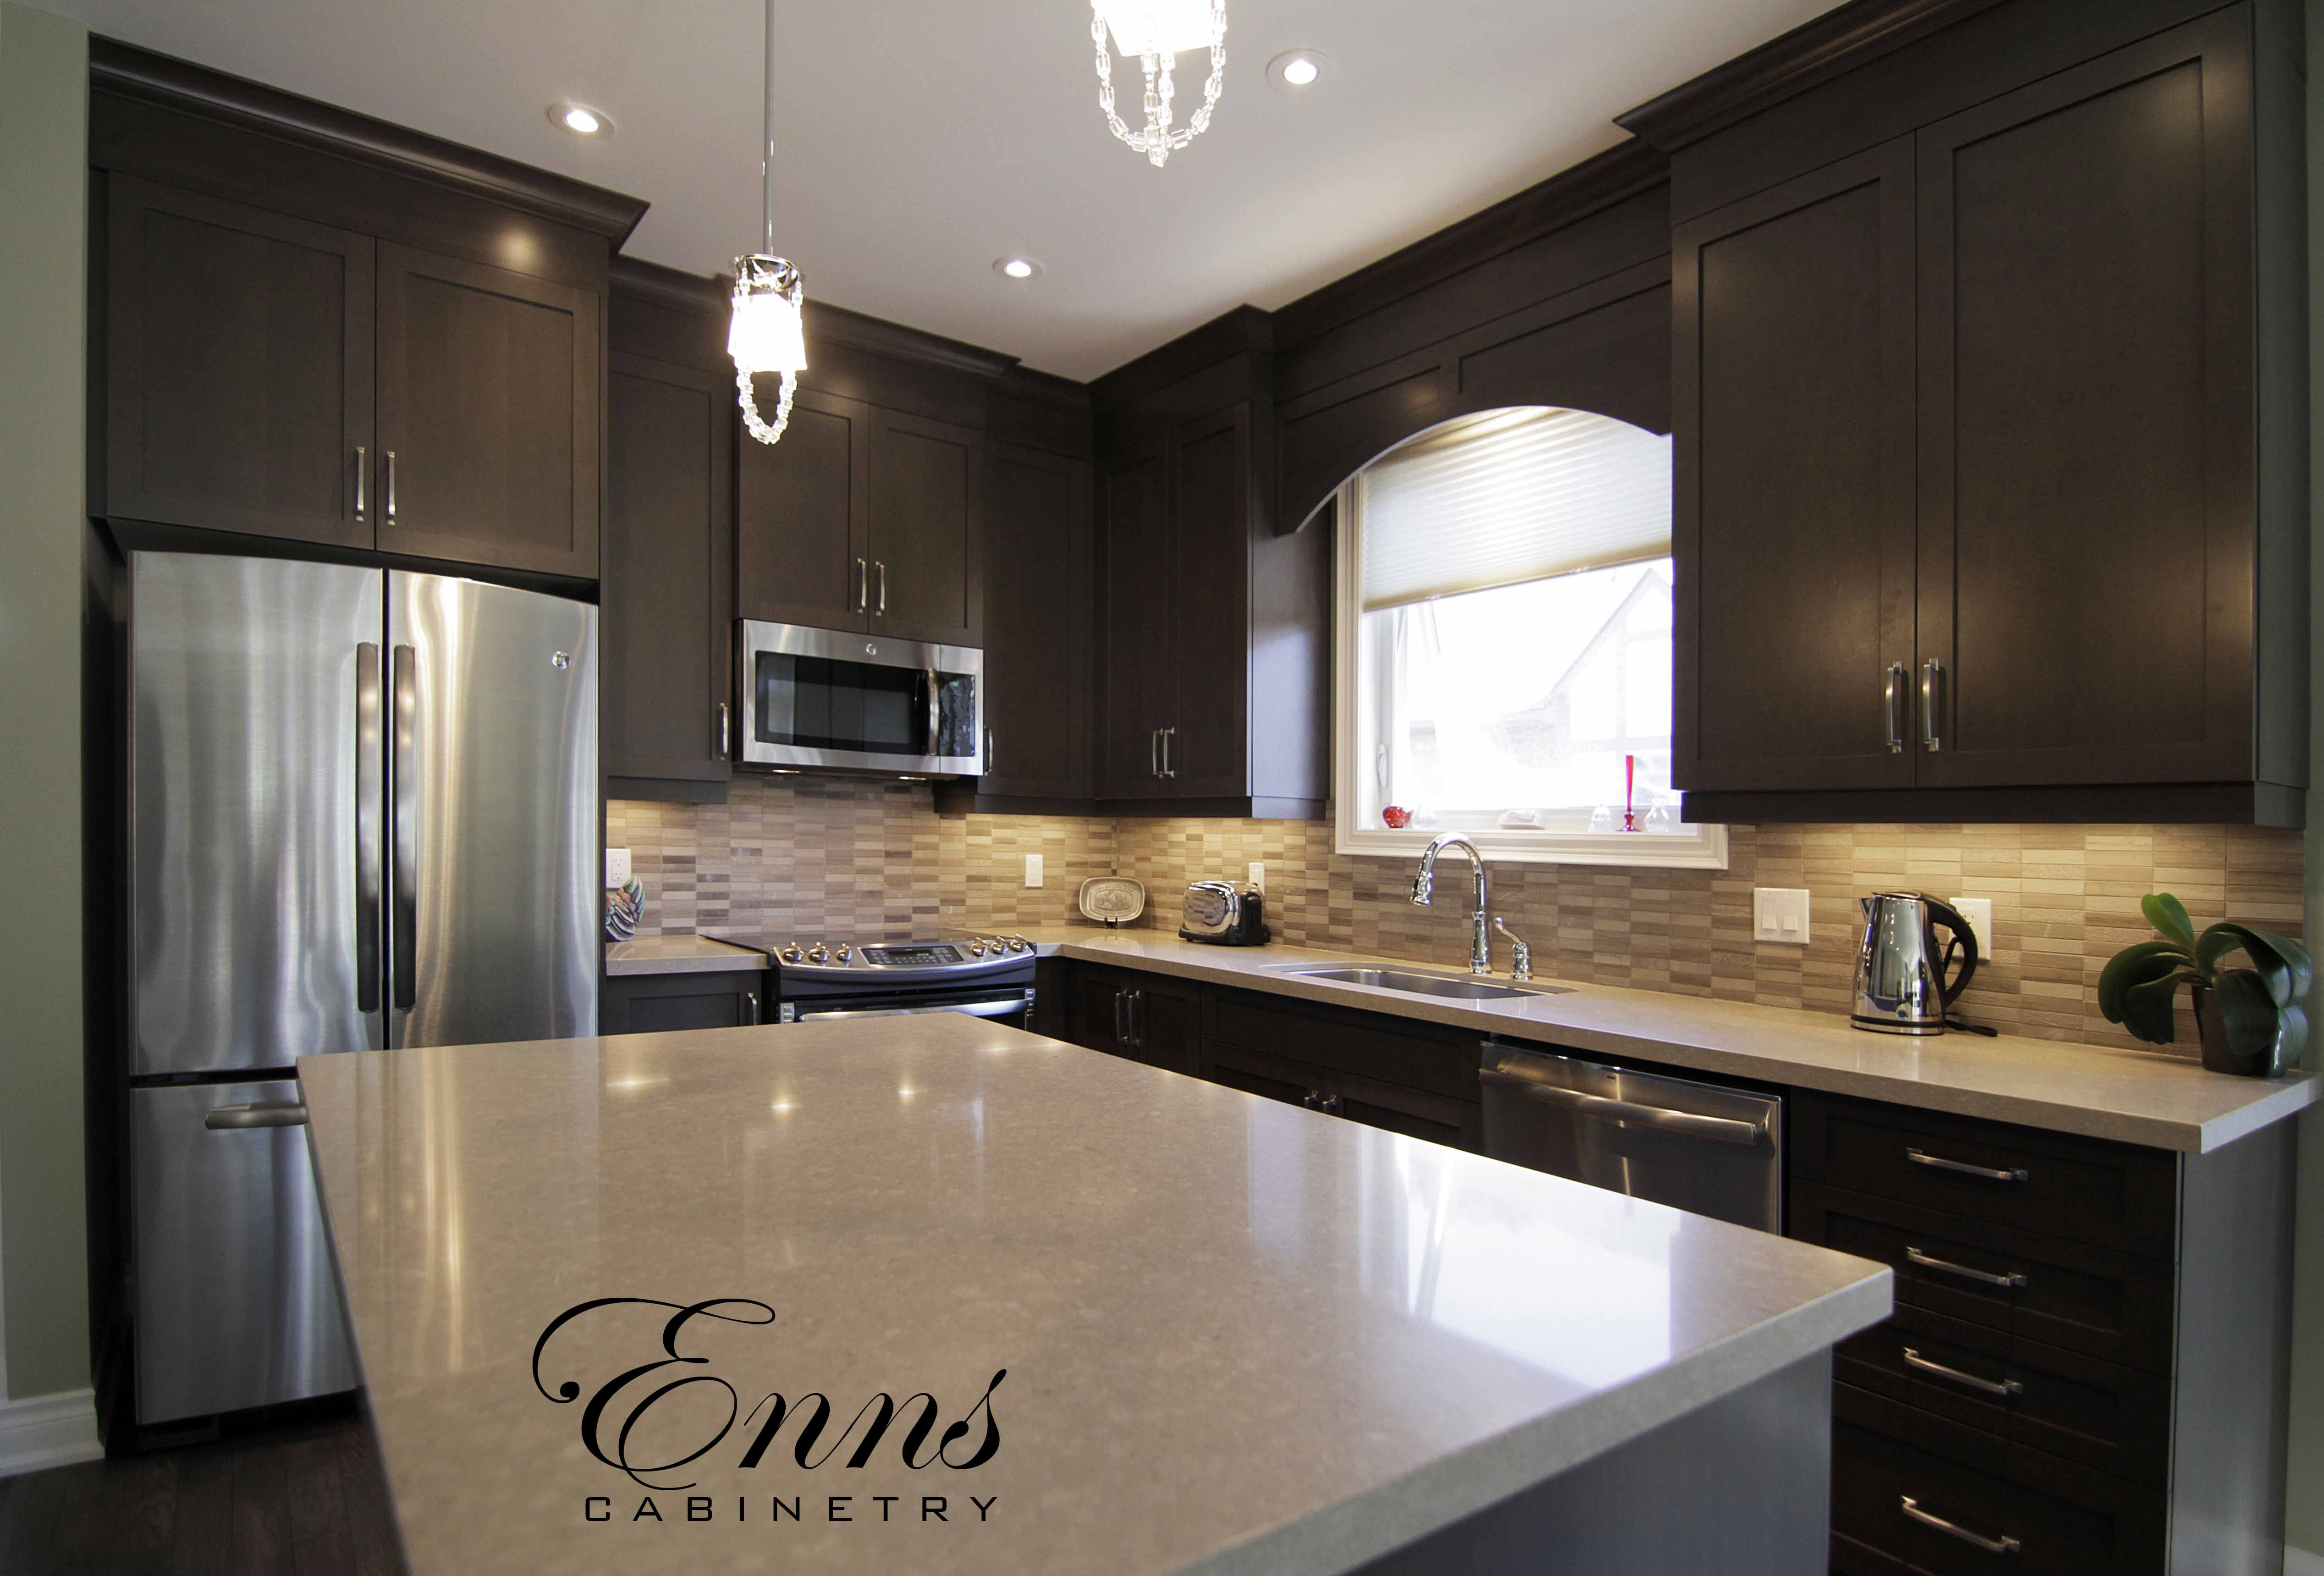 Pin By Enns Cabinetry Inc On Enns Kitchens Kitchen Cool Kitchens Modern Exterior